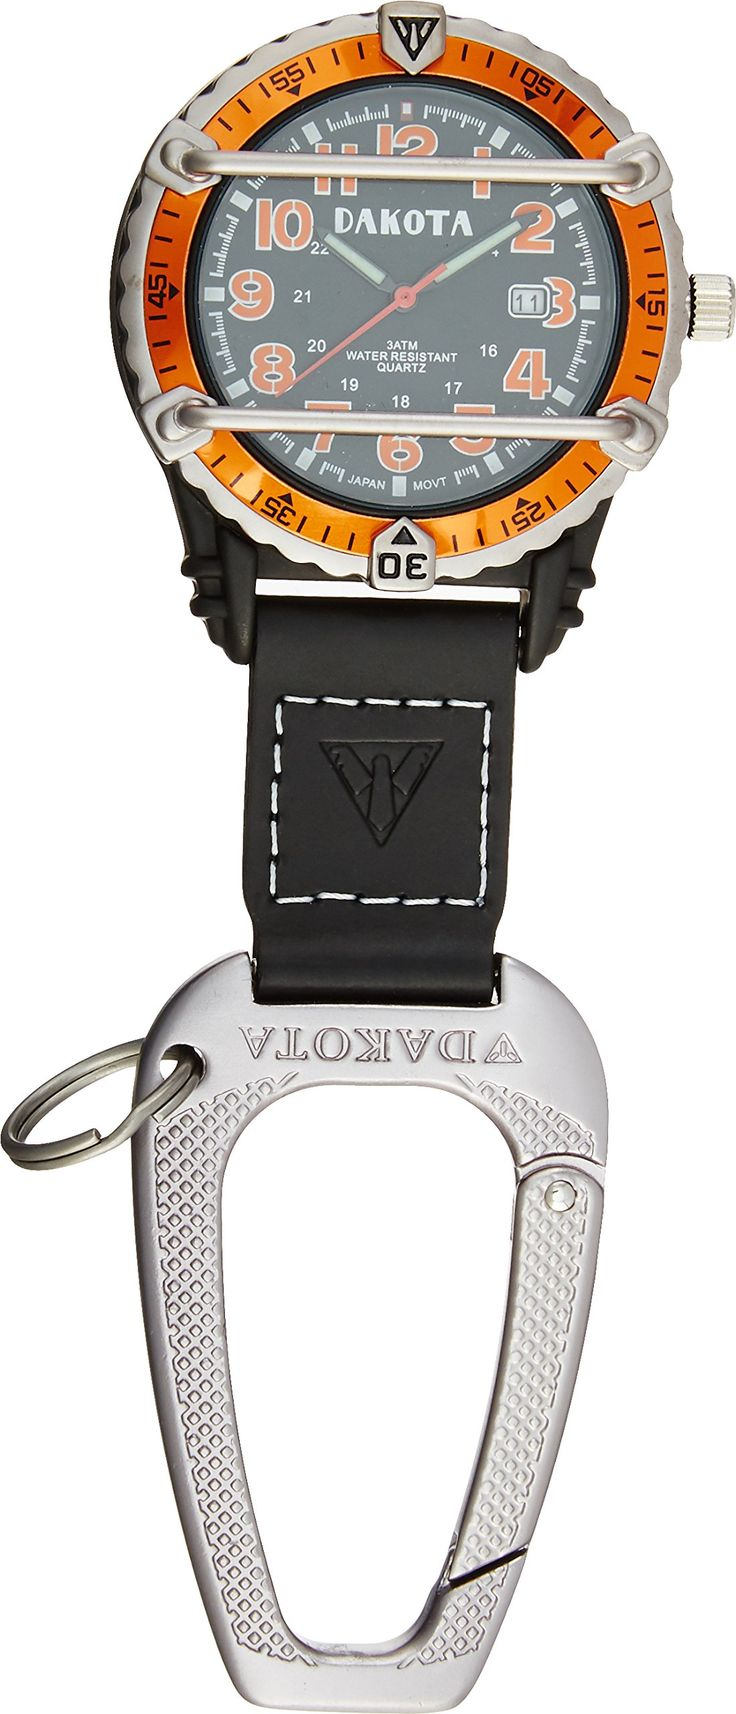 Dakota Watch Company Phase III Military Backpacker, Black/Orange. Black with orange military dial. 100 Feet water resistant. Genuine black leather fob with Dakota aluminum cobra clip carabiner. Bezel with integrated crystal protector. Luminescent hands and hour markers.